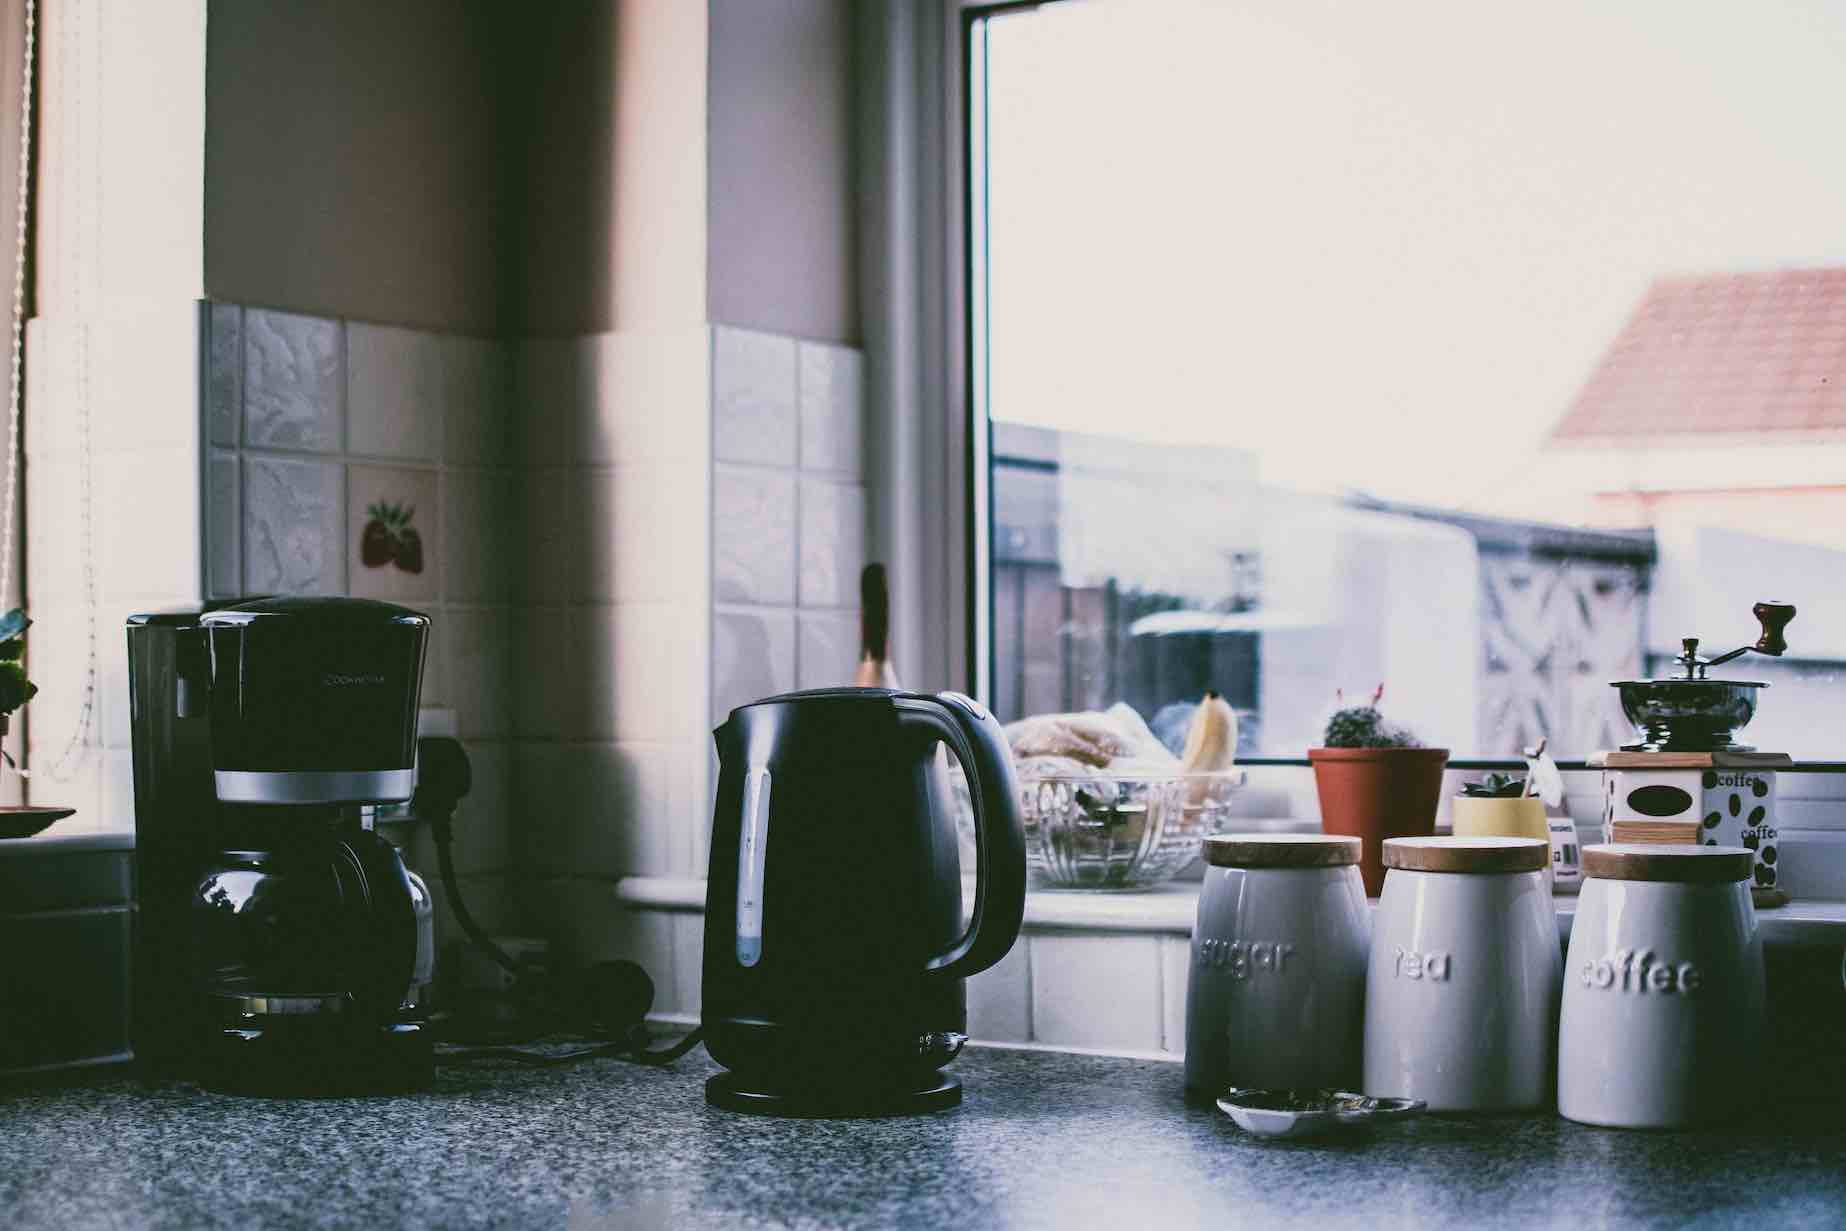 f-stop coffee coffee machine brewing guide